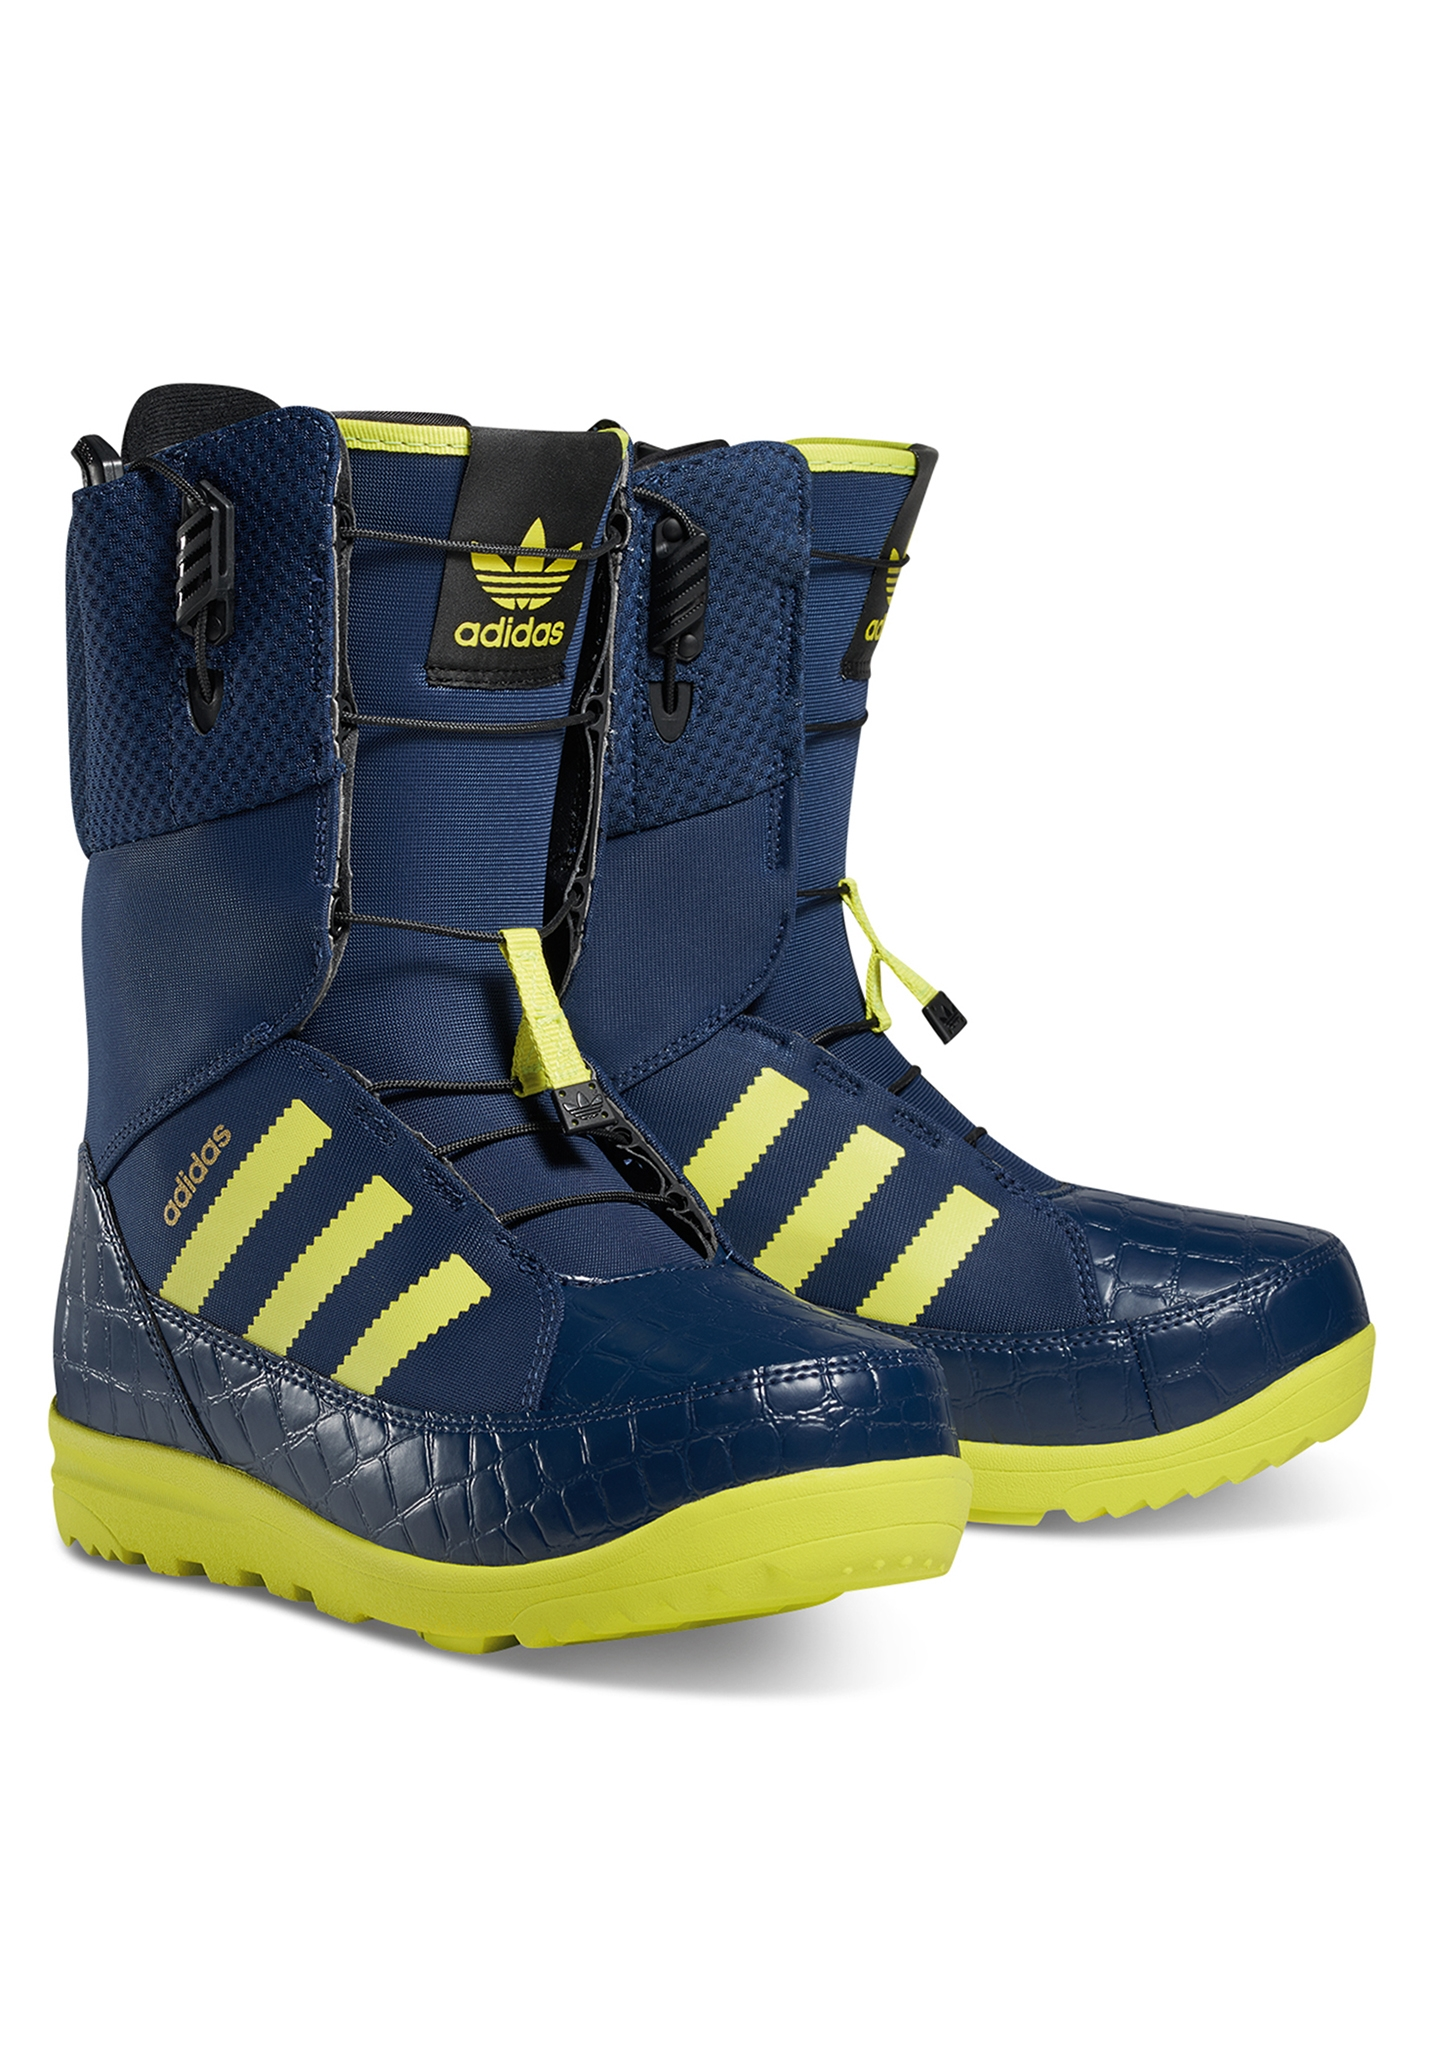 adidas mika lumi damen snowboard boots snow schuhe stiefel ebay. Black Bedroom Furniture Sets. Home Design Ideas